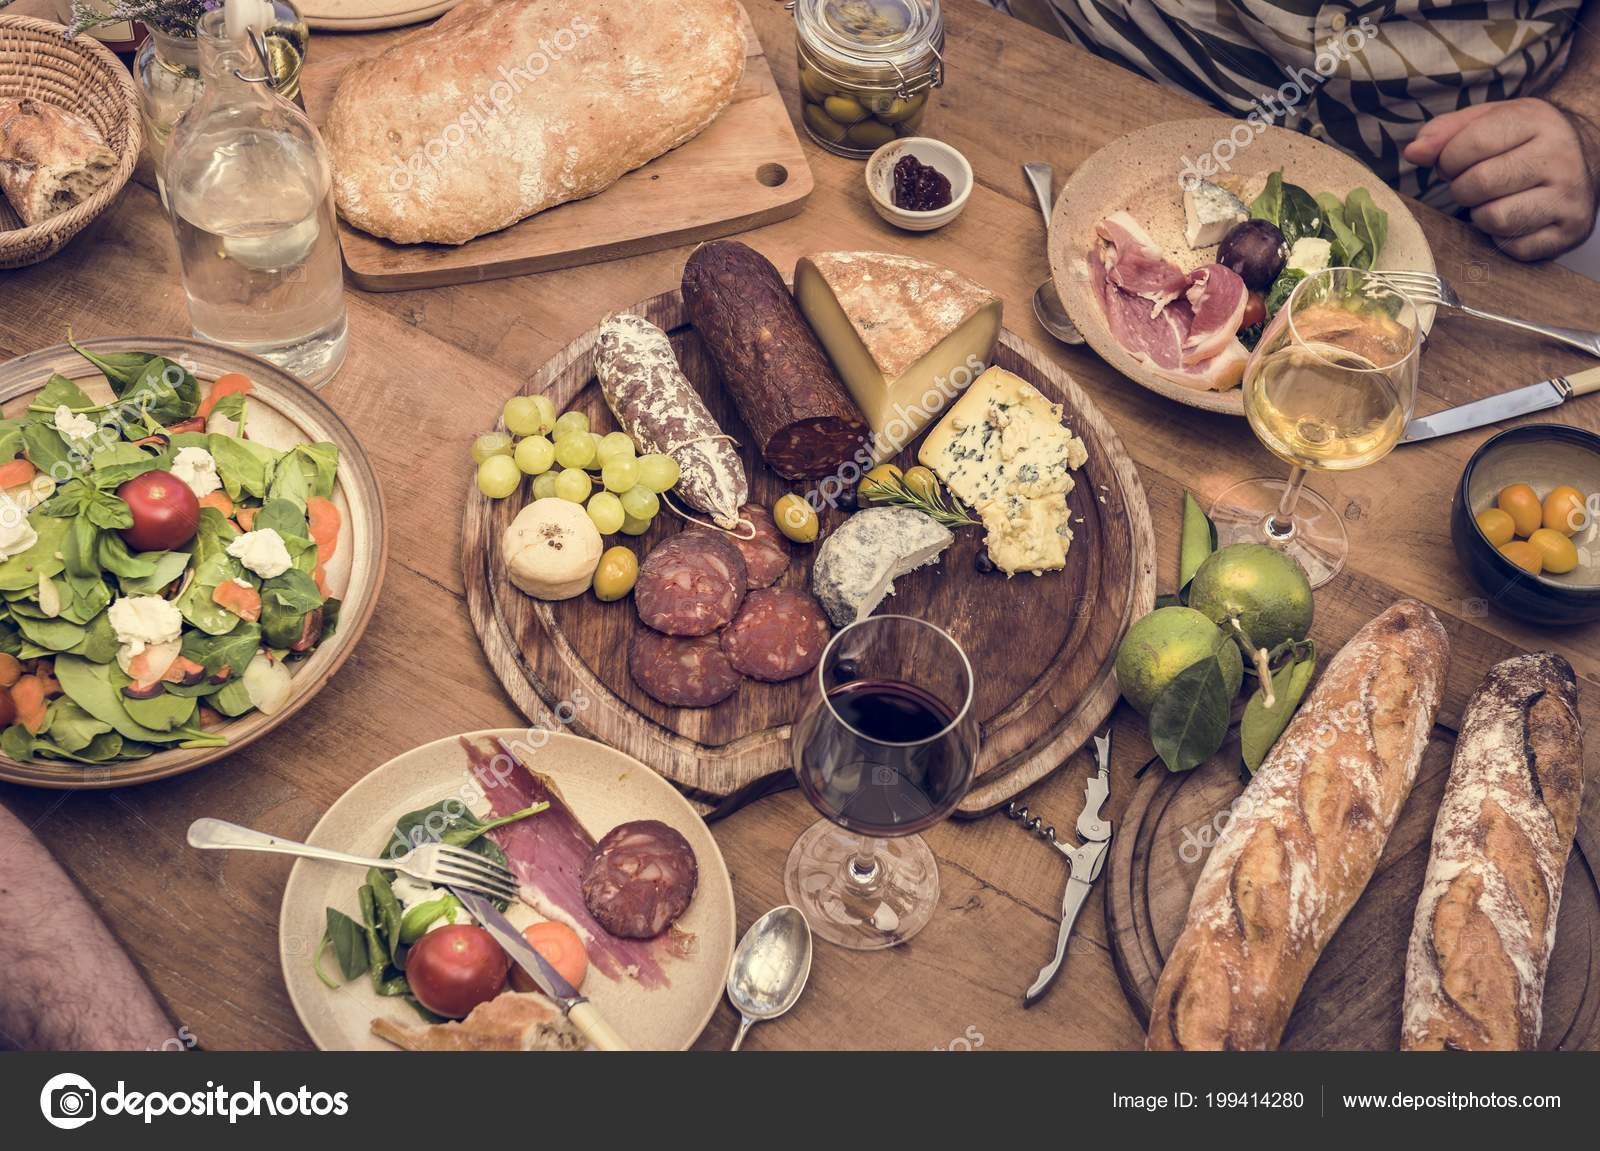 Assorted Cold Cuts Cheese Platter Food Photography Recipe Idea Stock Photo C Rawpixel 199414280